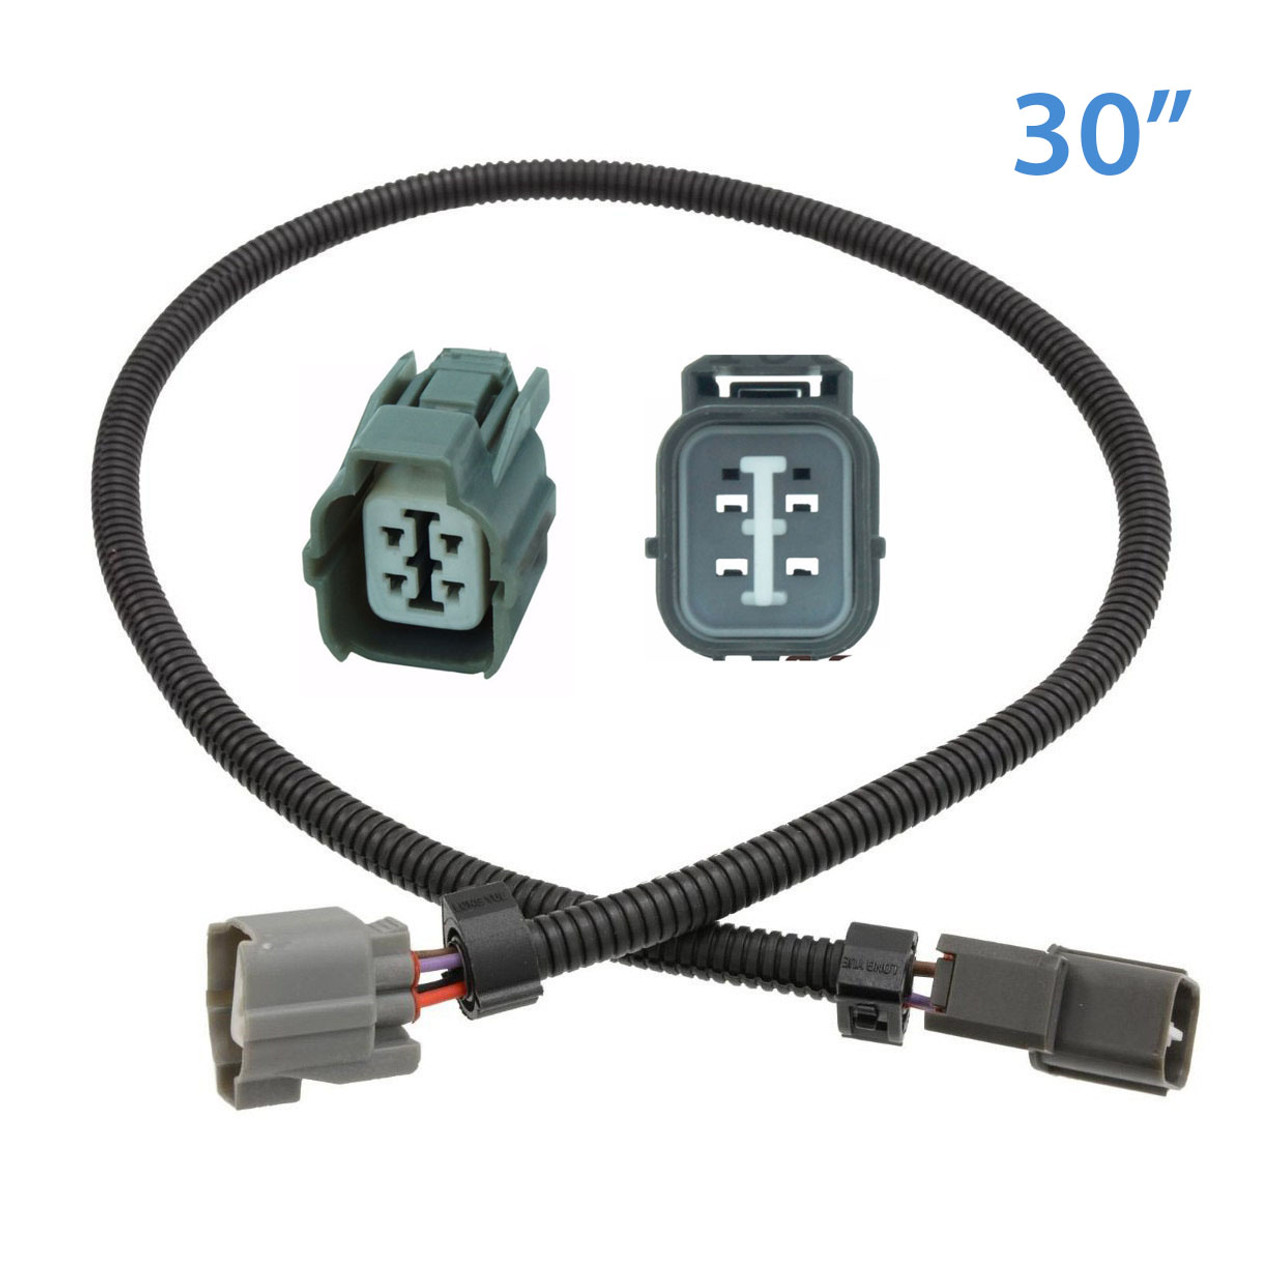 small resolution of 4 wire o2 sensor extension cable honda civic integra 30 obd innovations